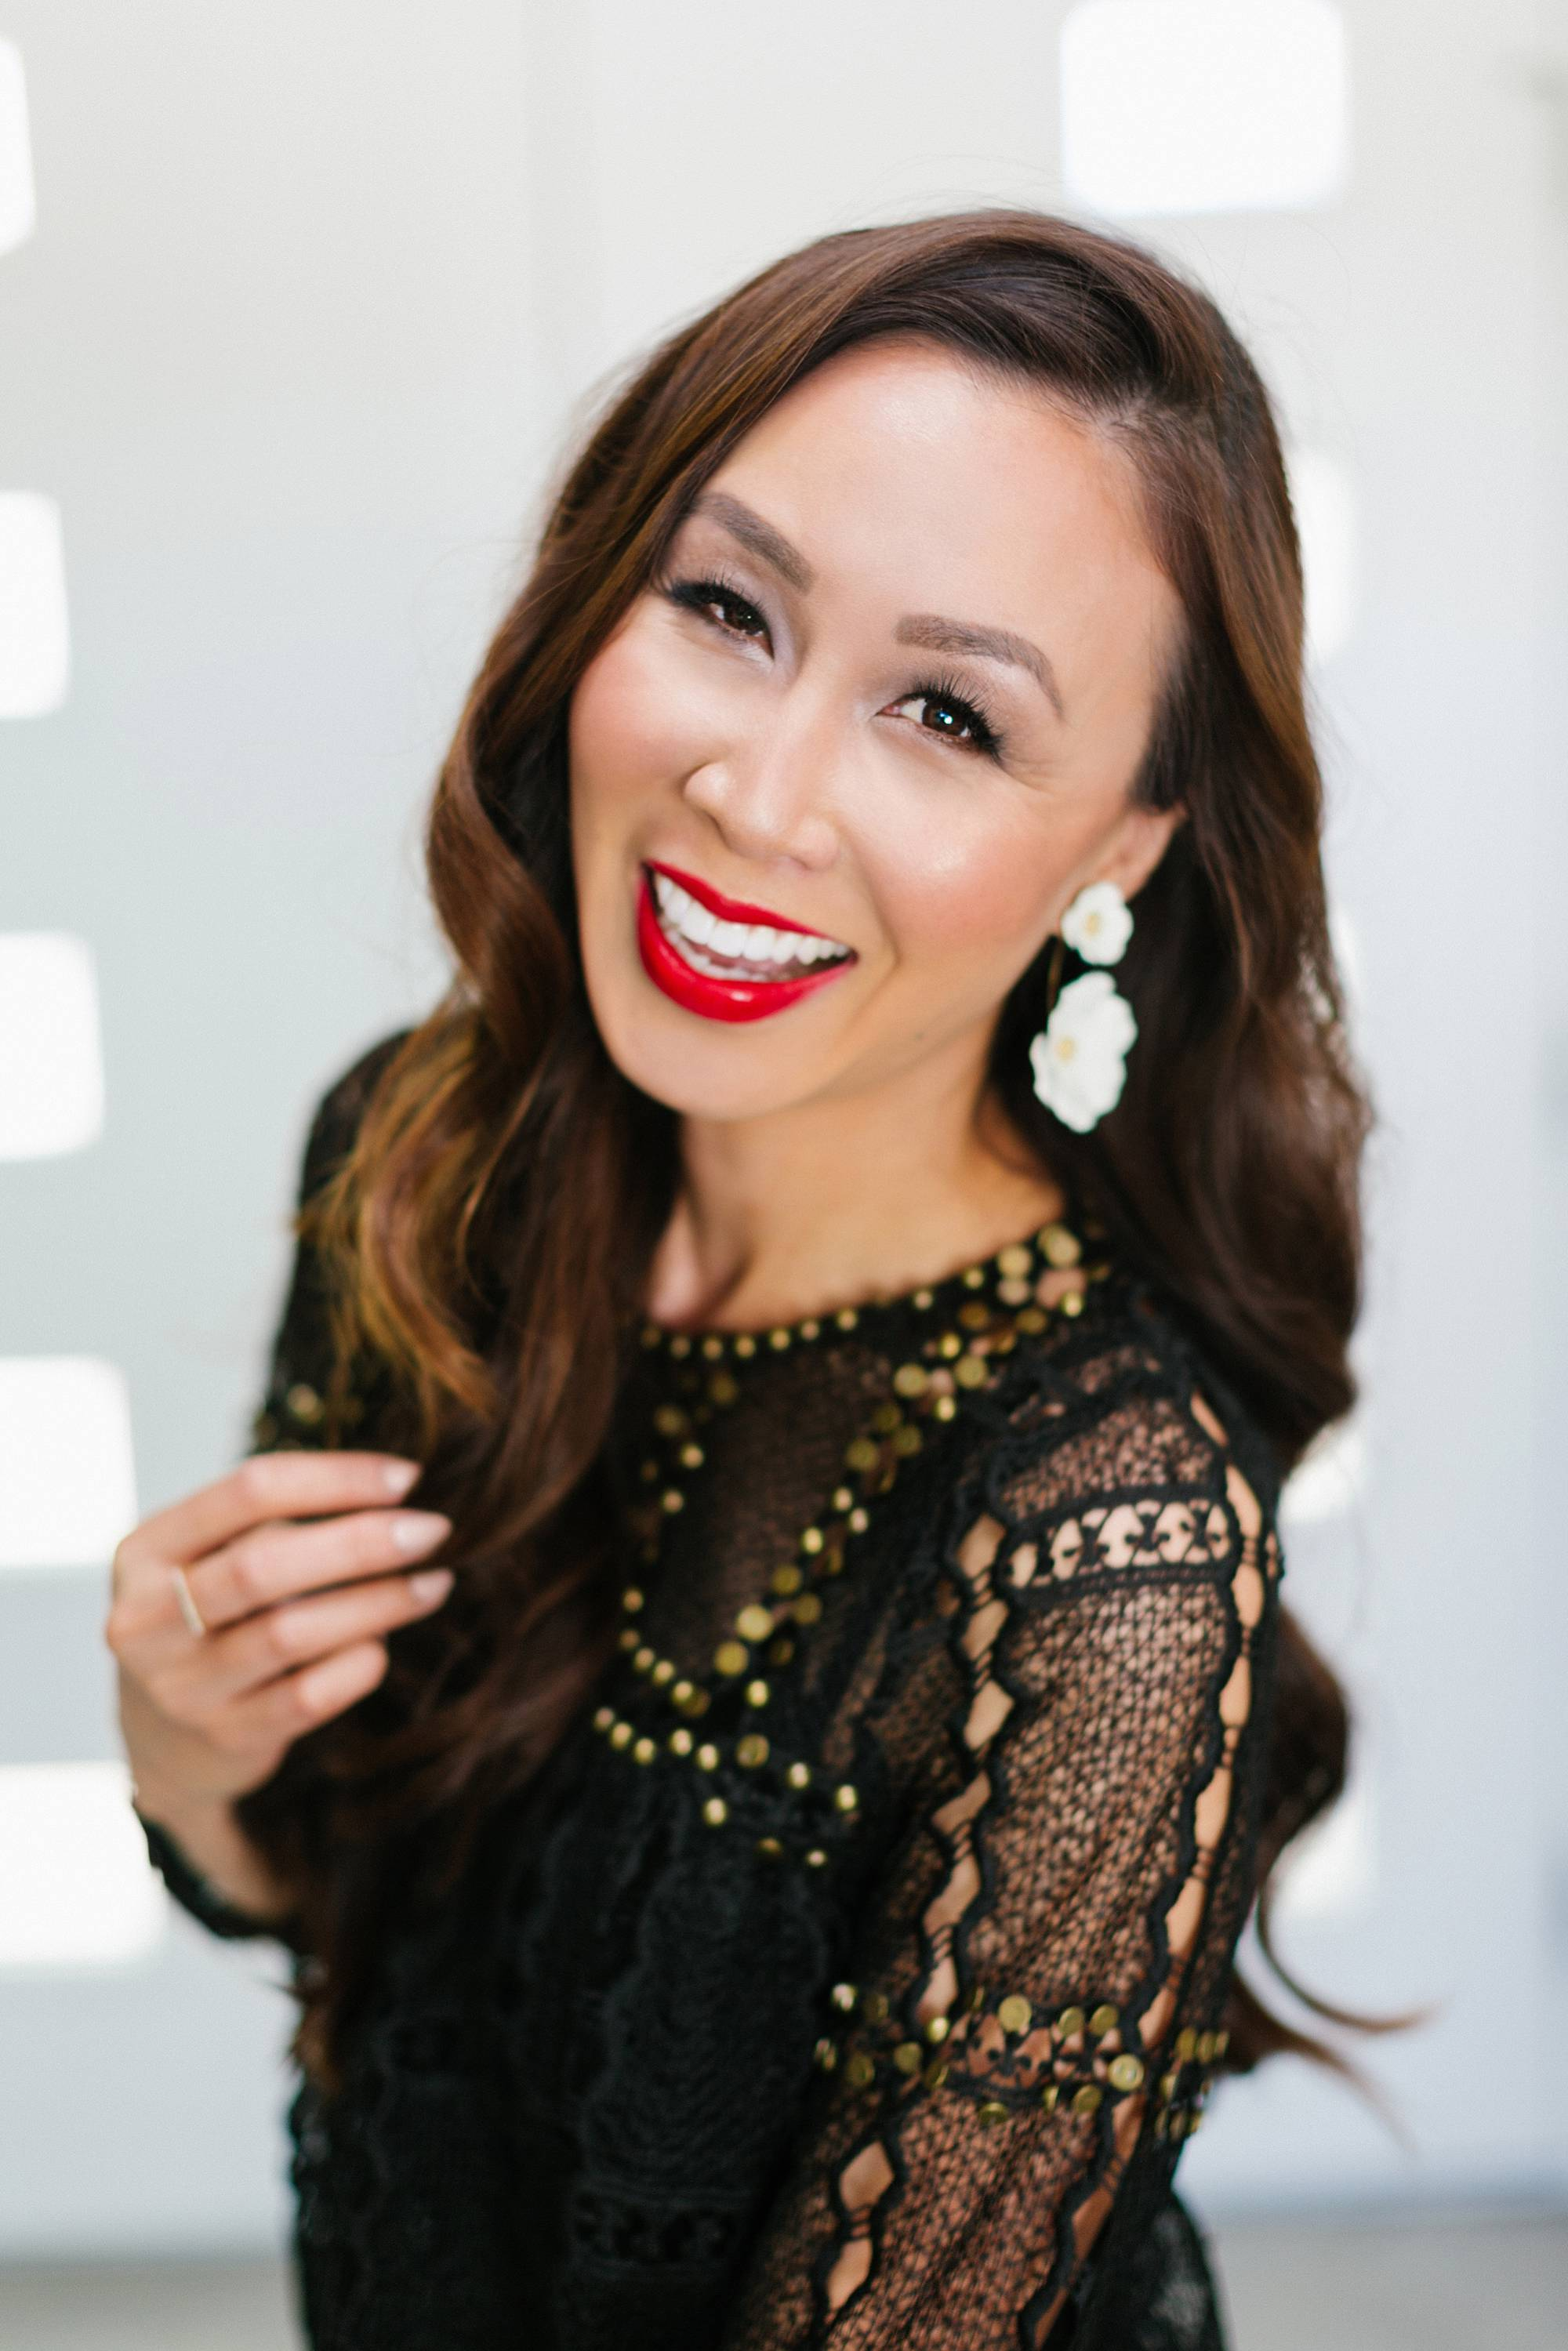 Holiday makeup style. Lifestyle beauty blogger Diana Elizabeth using Beautycounter Limited Edition Holiday Necessary Neutrals Eyeshadow Palette 18 shadows a review